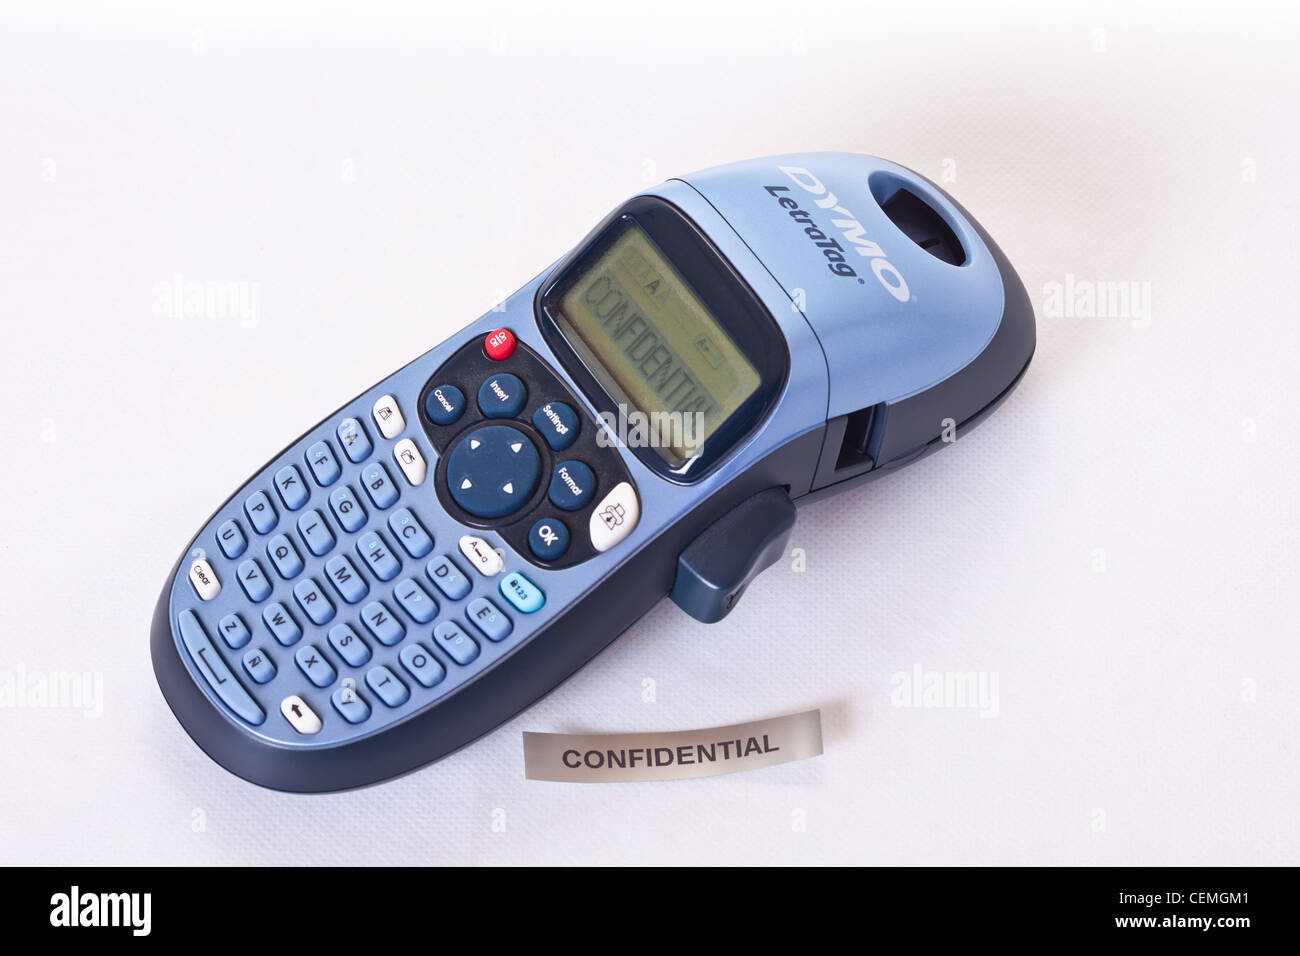 dymo label maker letratag with confidential label printed